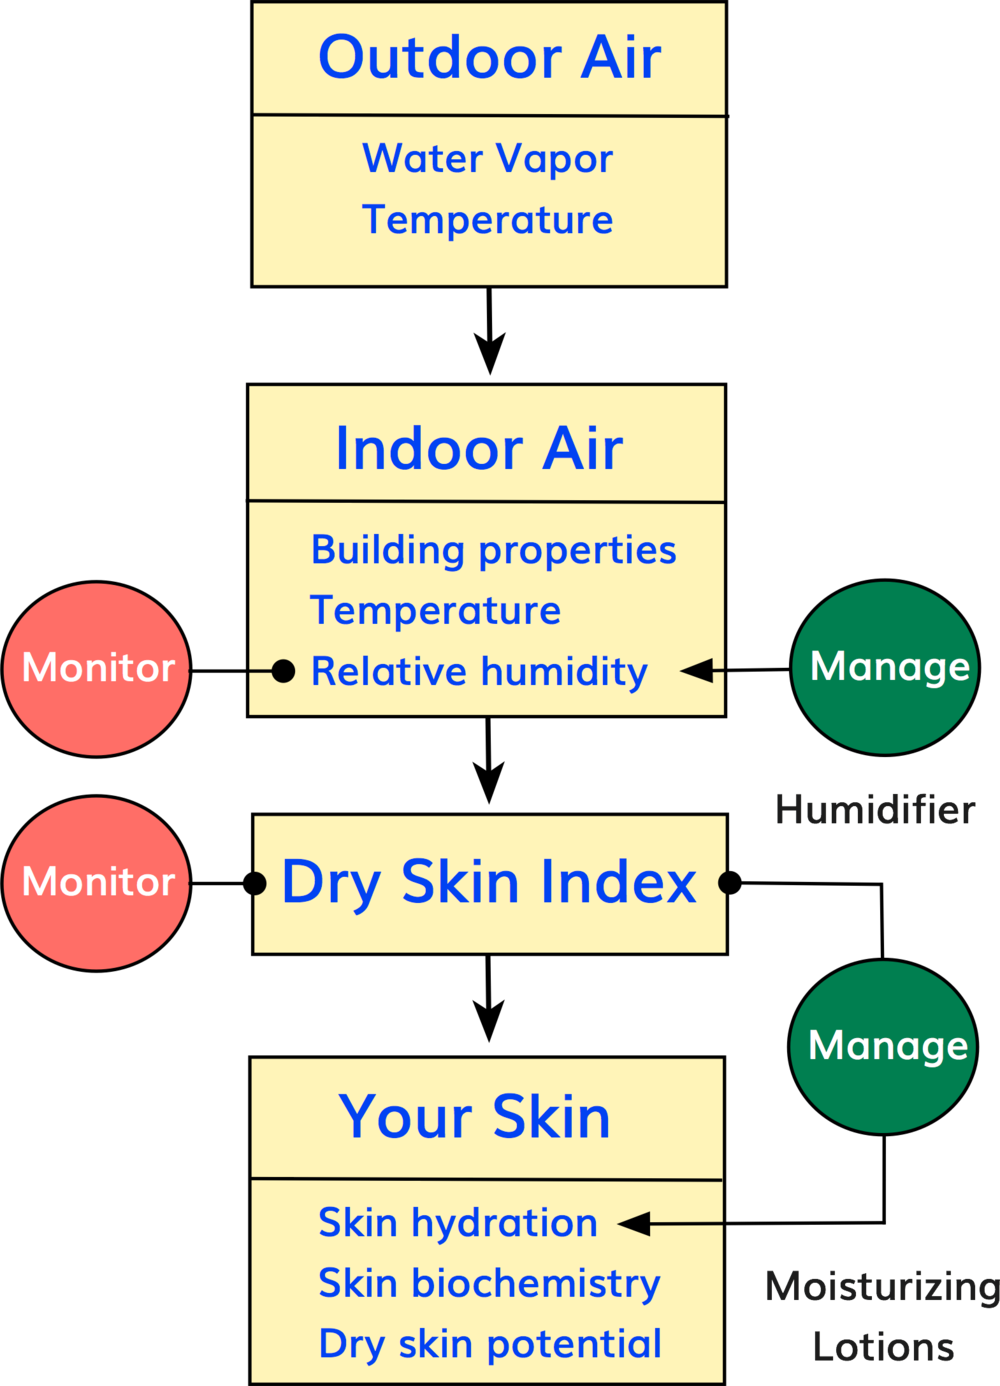 Proactive skin care to prevent and manage the potential for dry skin depends on the routine monitoring of indoor air for humidity and the Dry Skin Index.